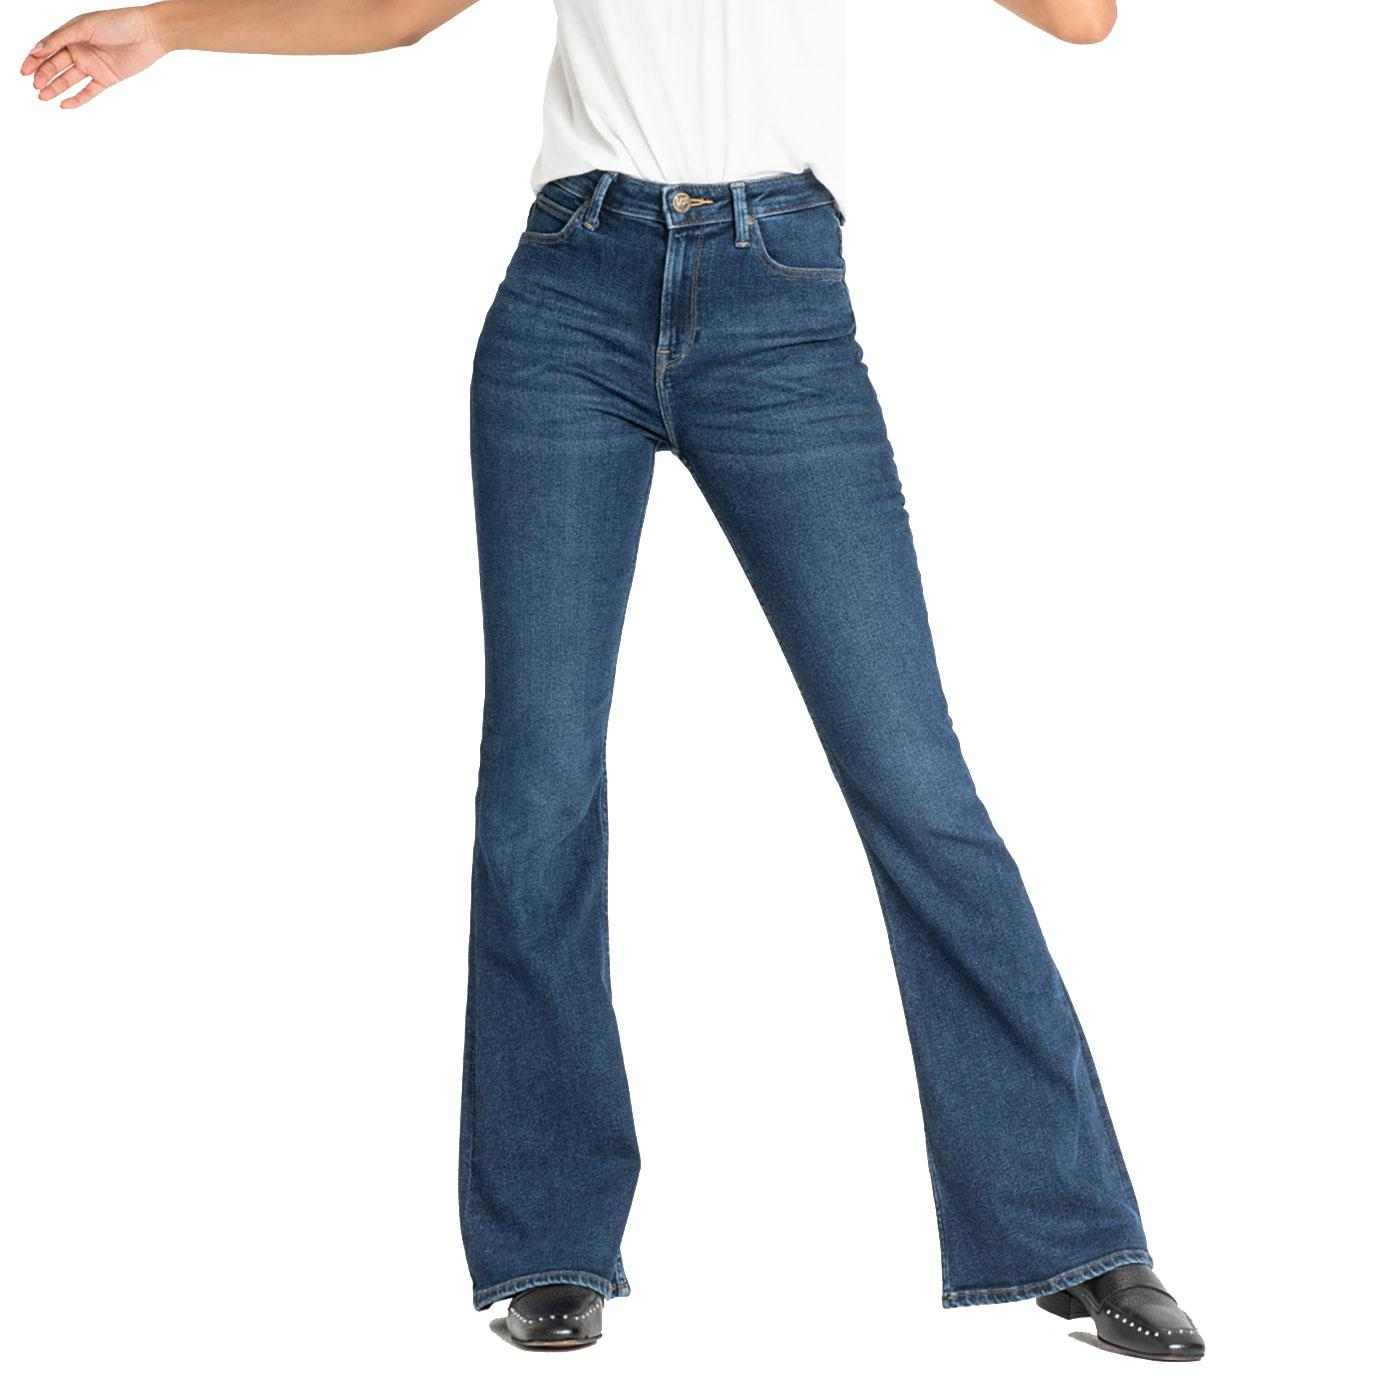 Breese LEE JEANS Retro High Rise Flare Jeans DW